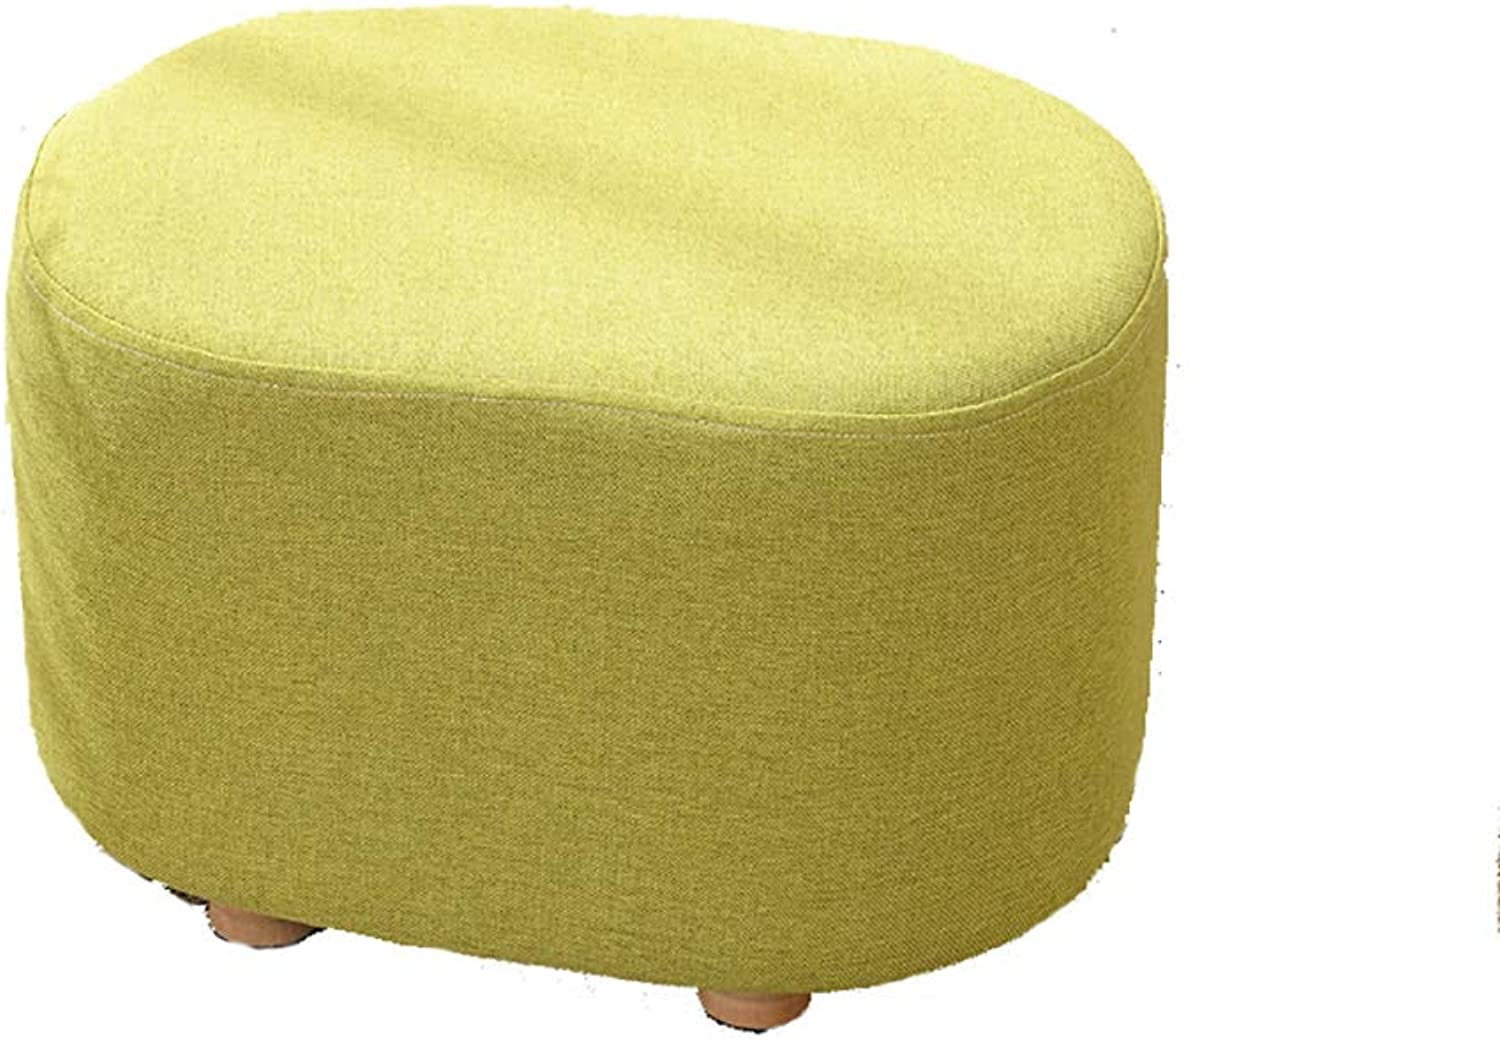 LICCC Low Stool Change shoes Bench Sofa Stool Living Room Entrance Short Stool, 40cm  30cm  27cm (color   Yellow)